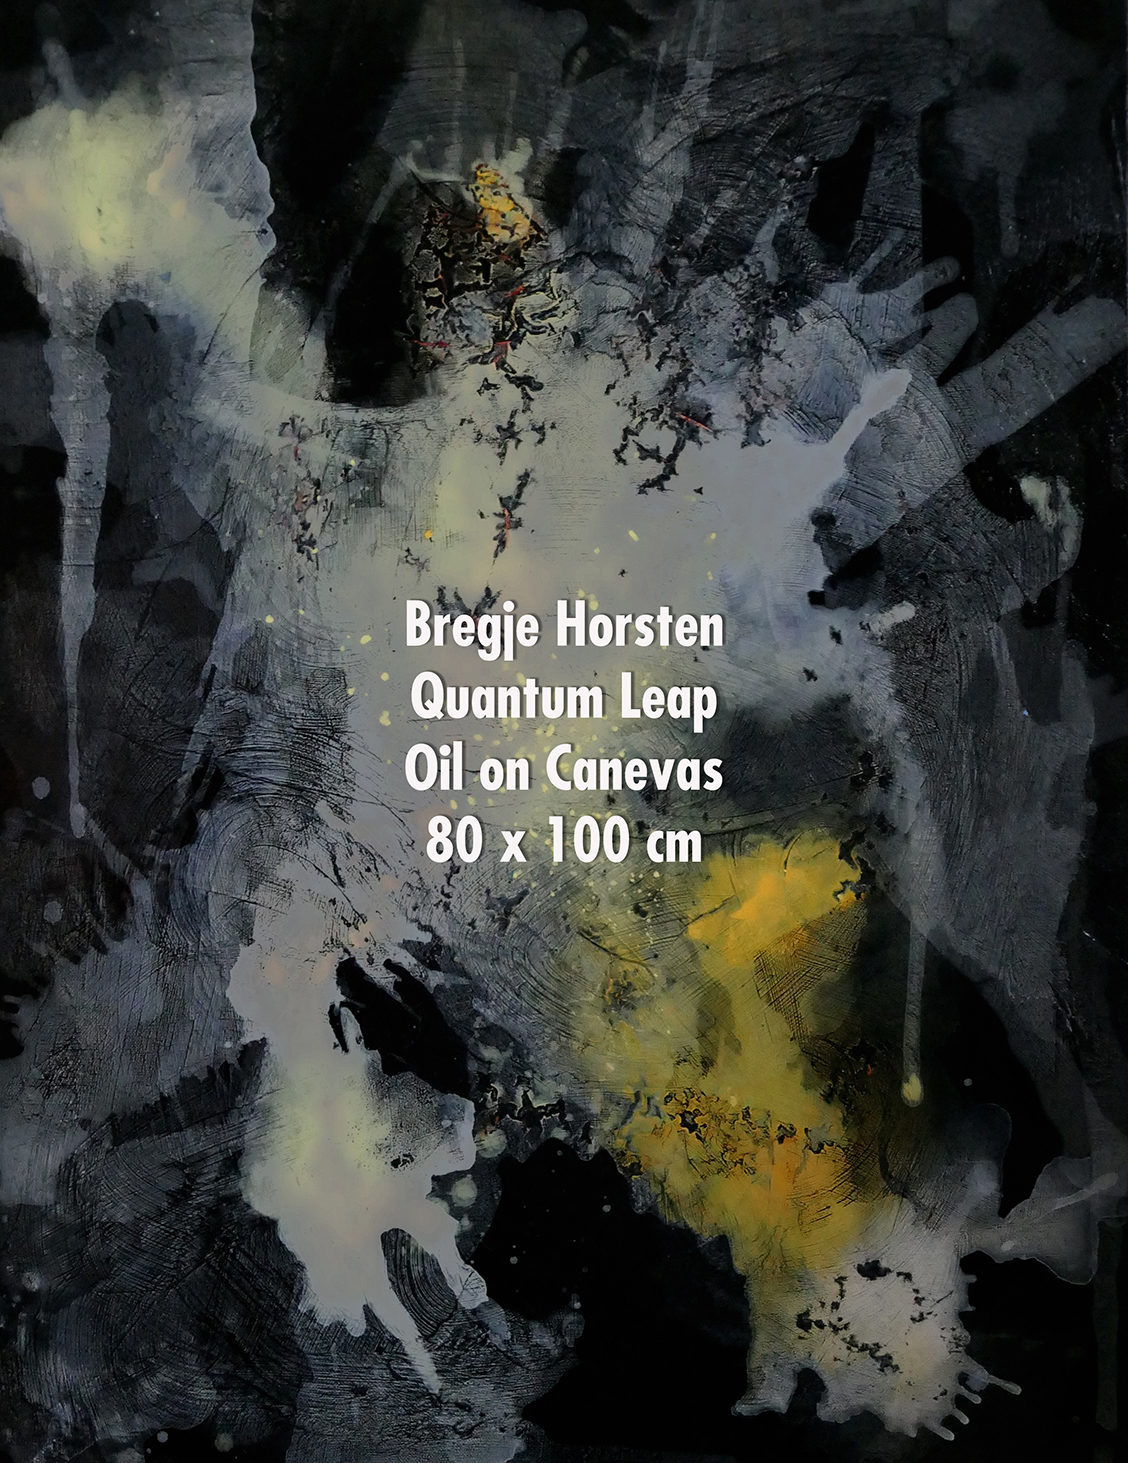 Bregje Horsten Quantum Leap Oil on Canev